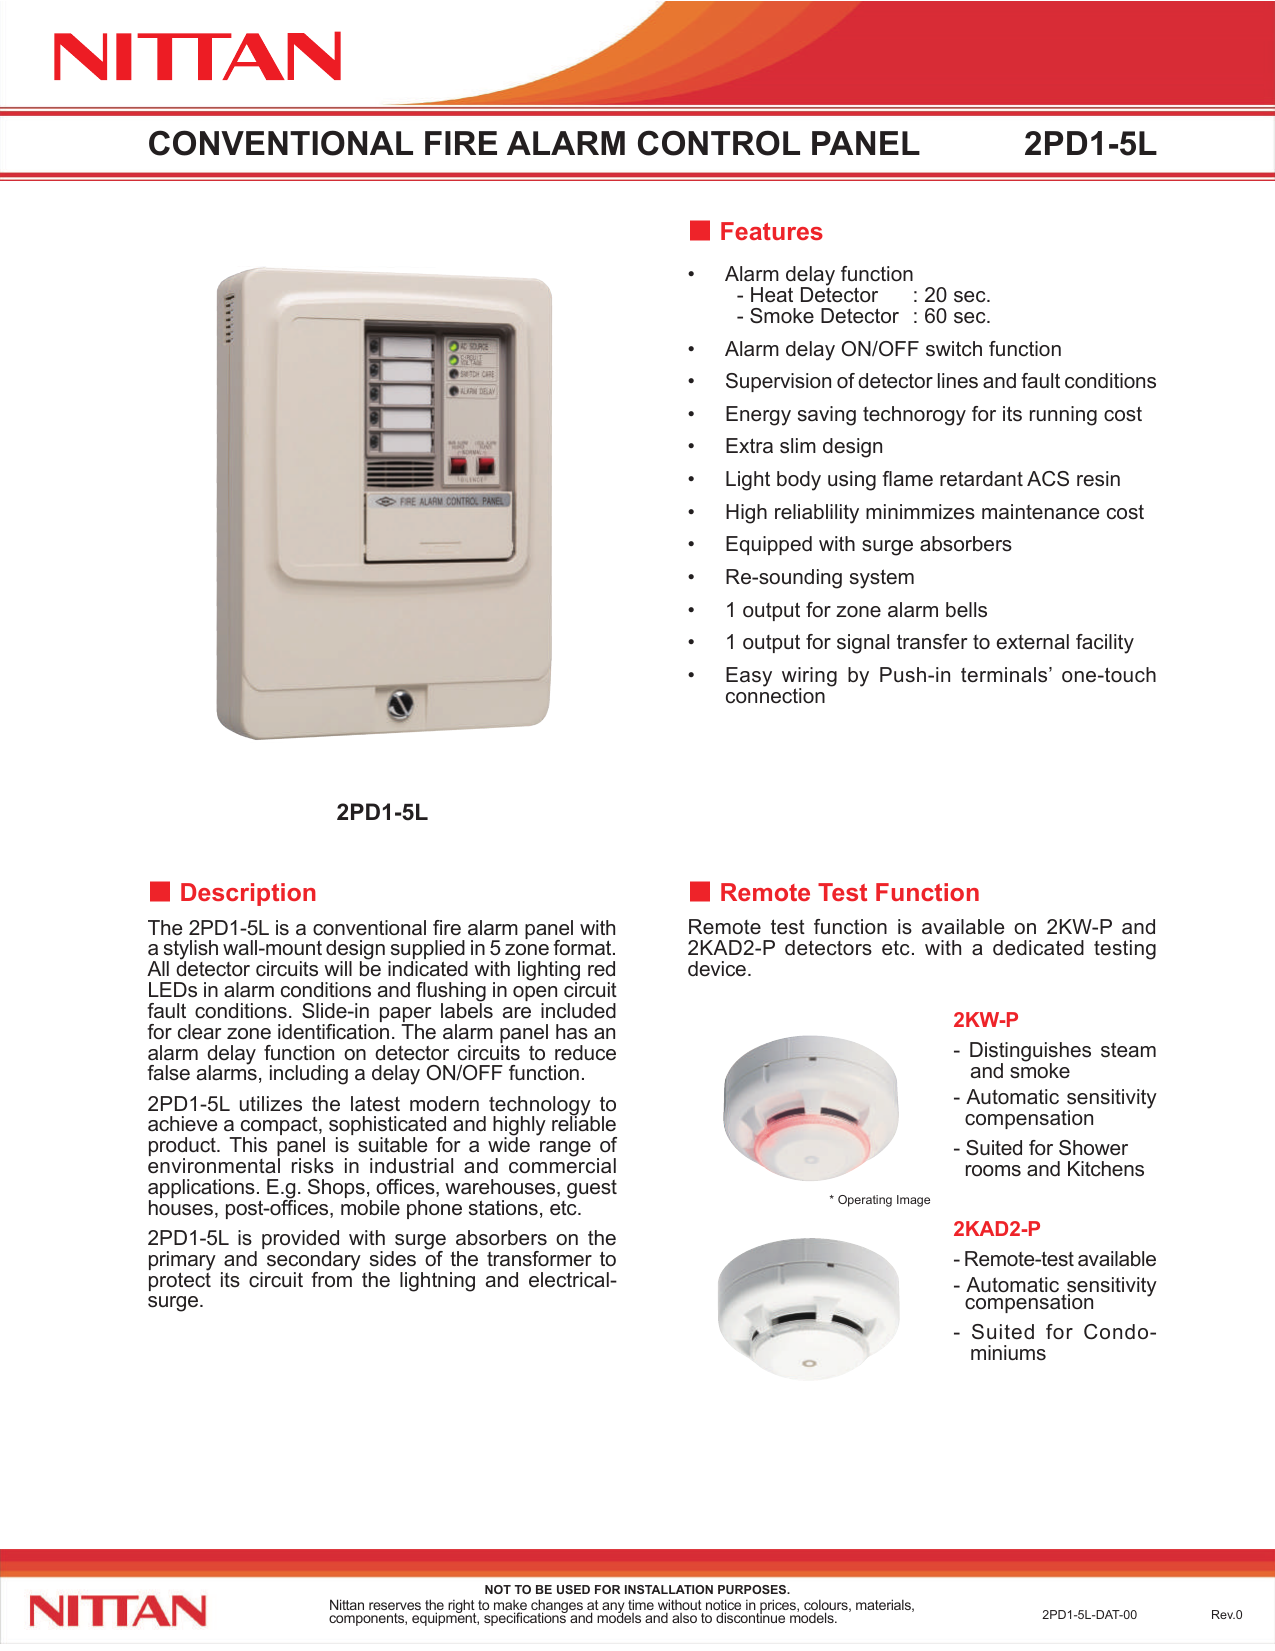 Luxury Smoke Detector Control Panel Ensign - Electrical System Block ...